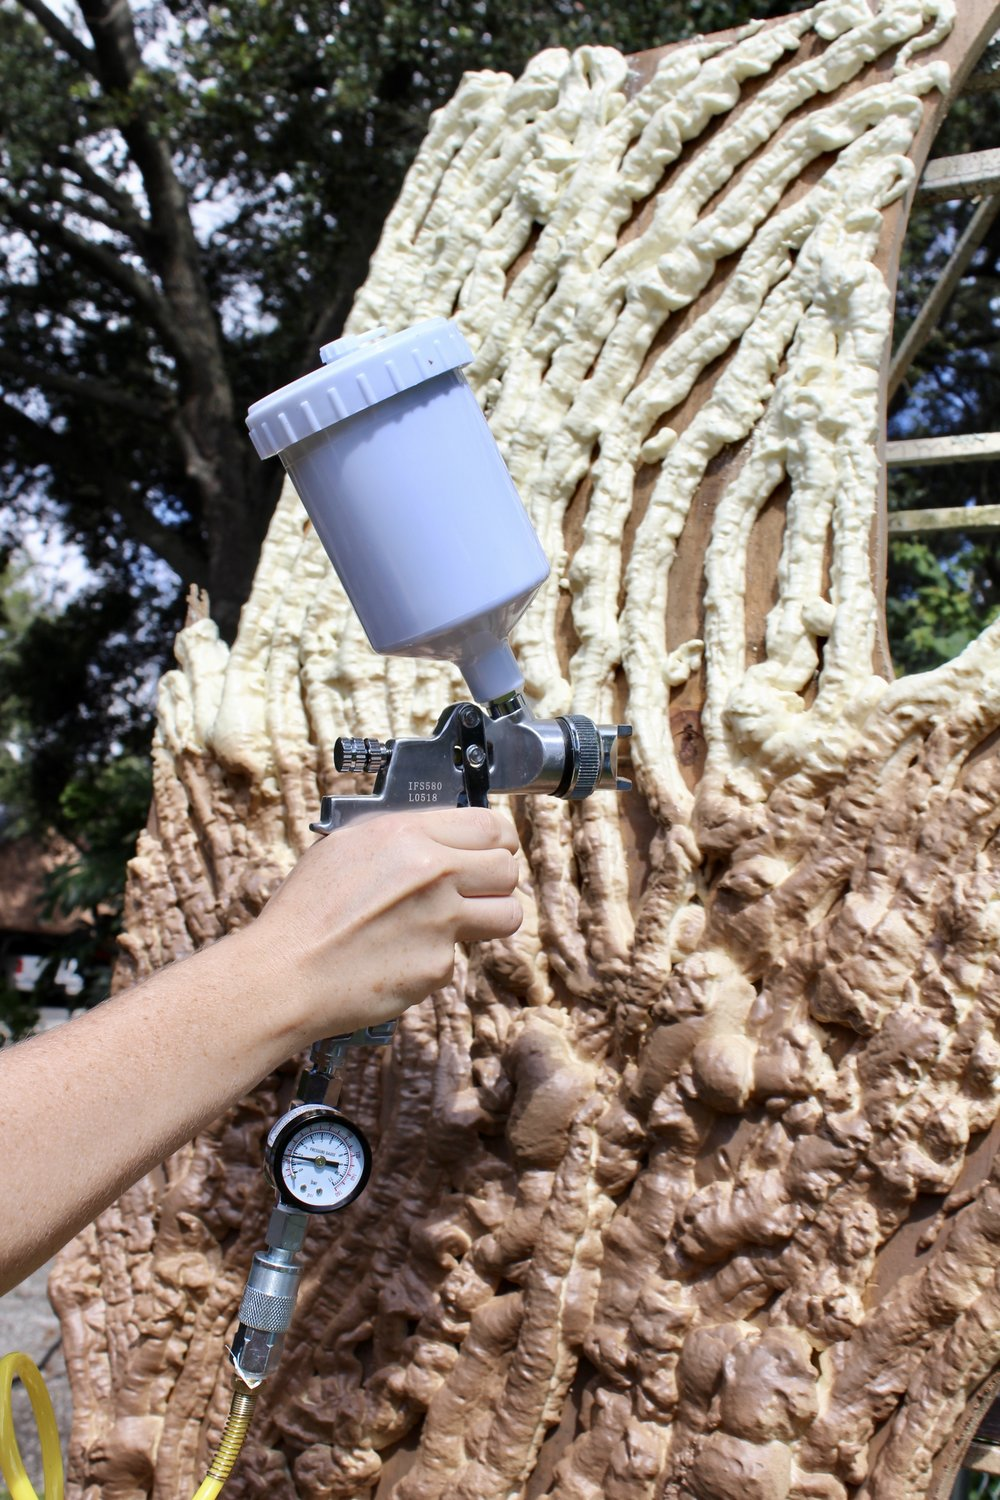 This HVLP spray gun makes it easy to paint those hard-to-reach recesses